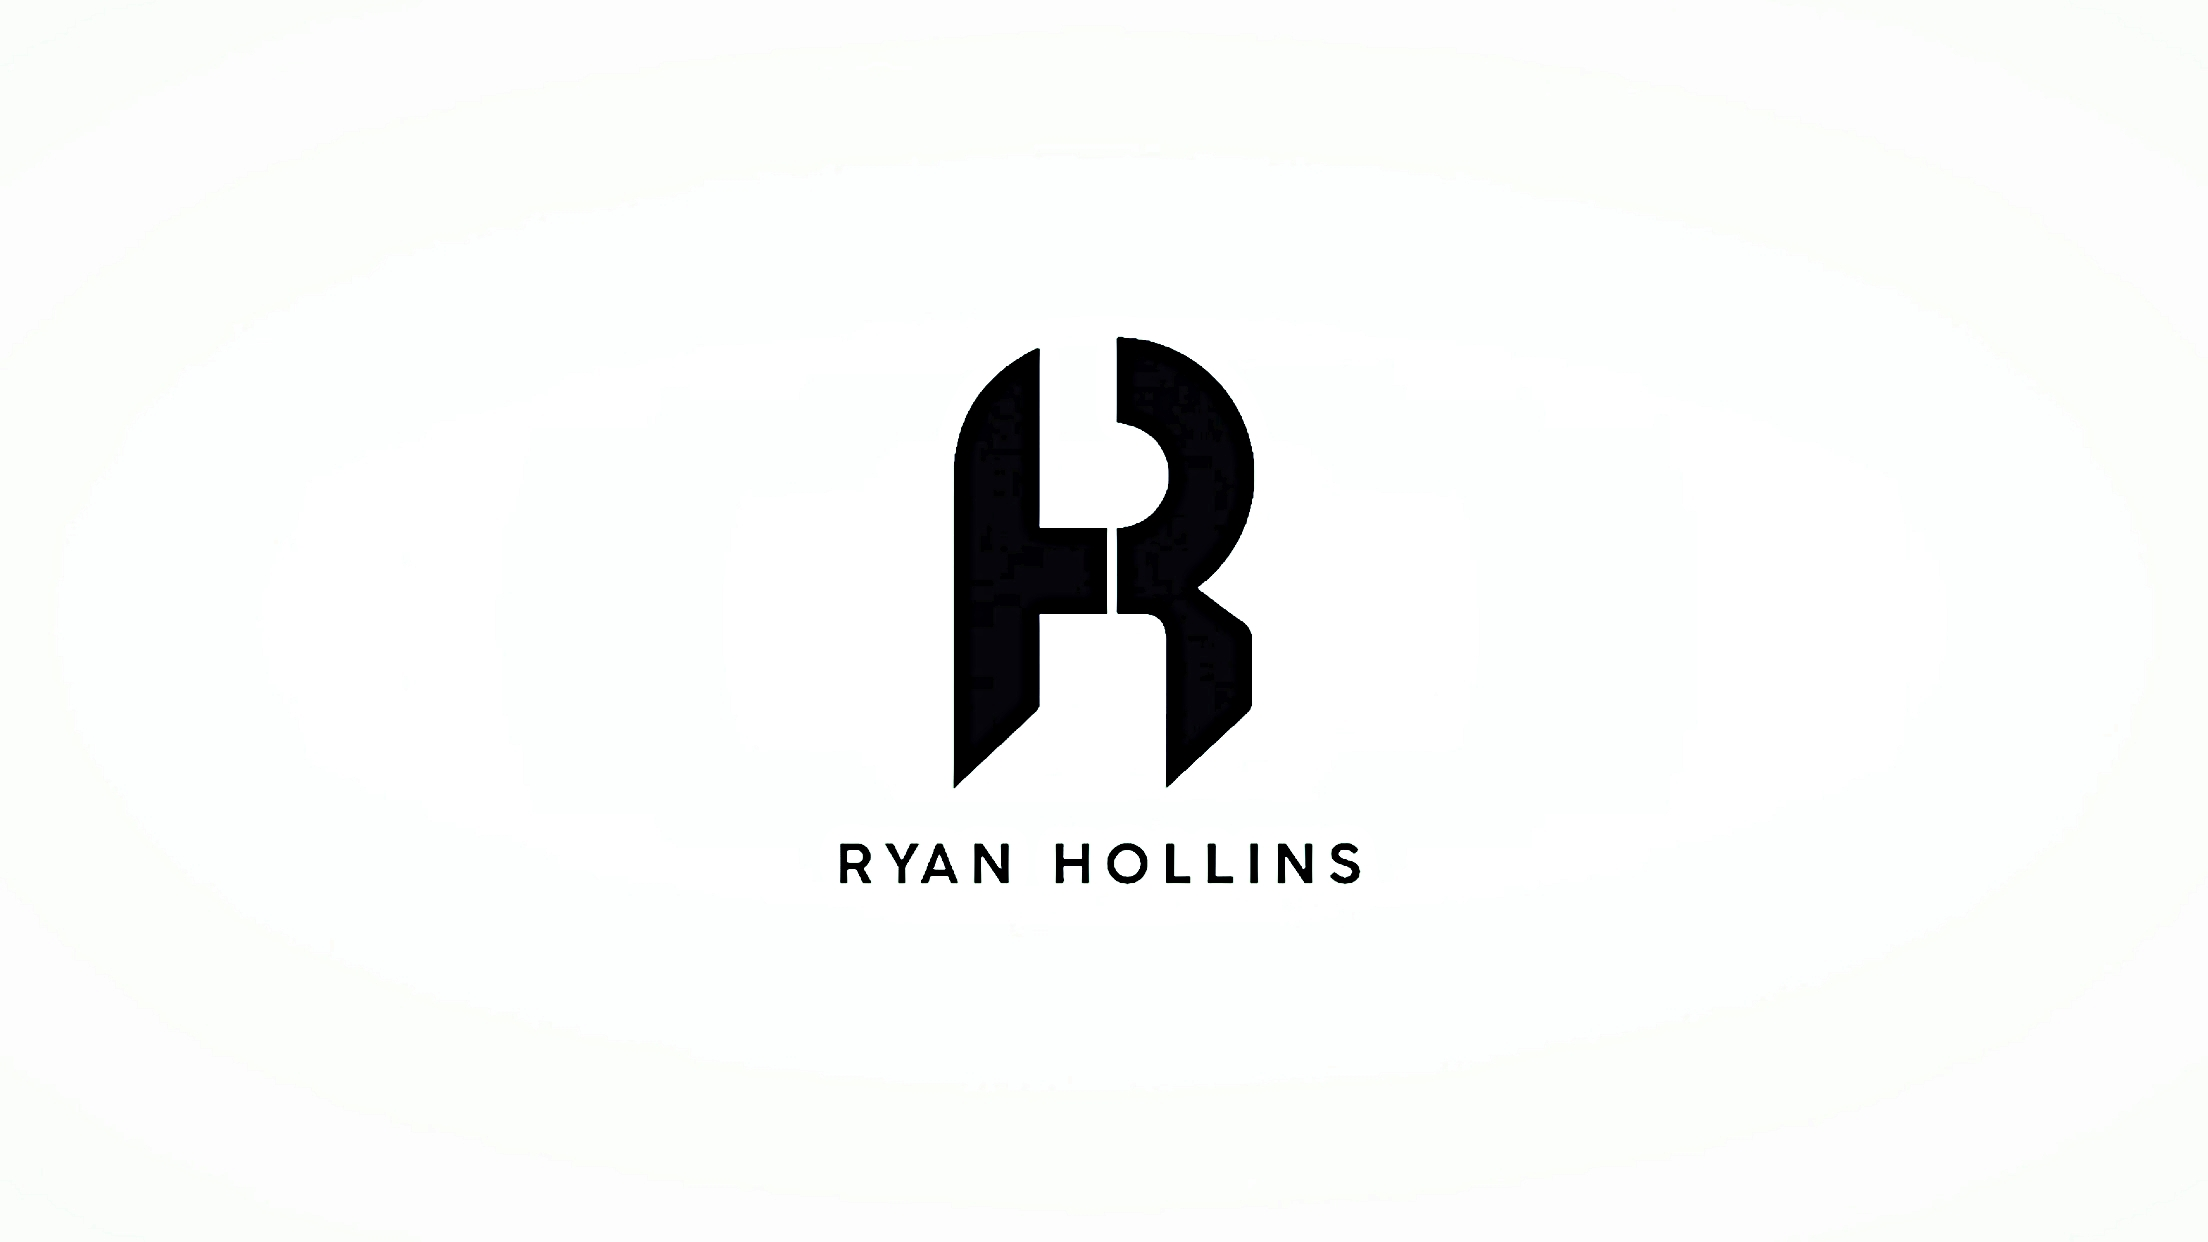 Who is Ryan Hollins - Loving husband and father to four, 10 year NBA veteran, captain of the 2006 UCLA championship team, compelling sports personality, and Tech Junkie.Hard work, Humility, and dedication have directly attributed to my successes on and off the court. To much is given much is expected, as a community leader I strive to pass on the gifts that were once bestowed upon me.-Humble Giant